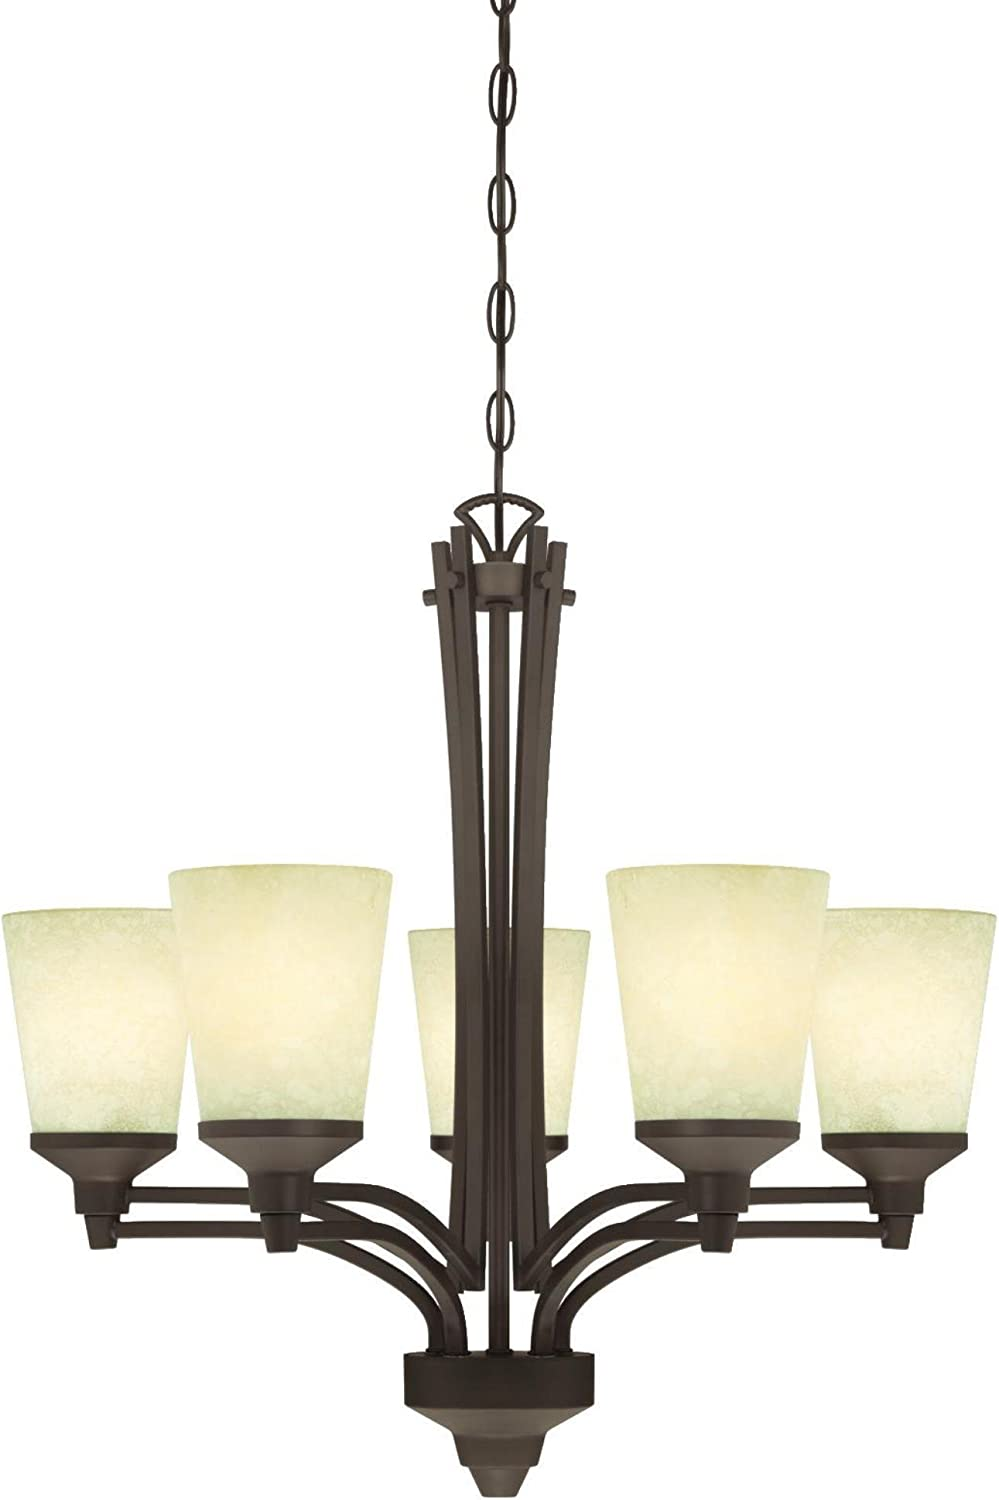 Westinghouse Lighting 6307100 Malvern Five-Light Indoor Chandelier, Oil Rubbed Bronze Finish with Smoldering Scavo Glass